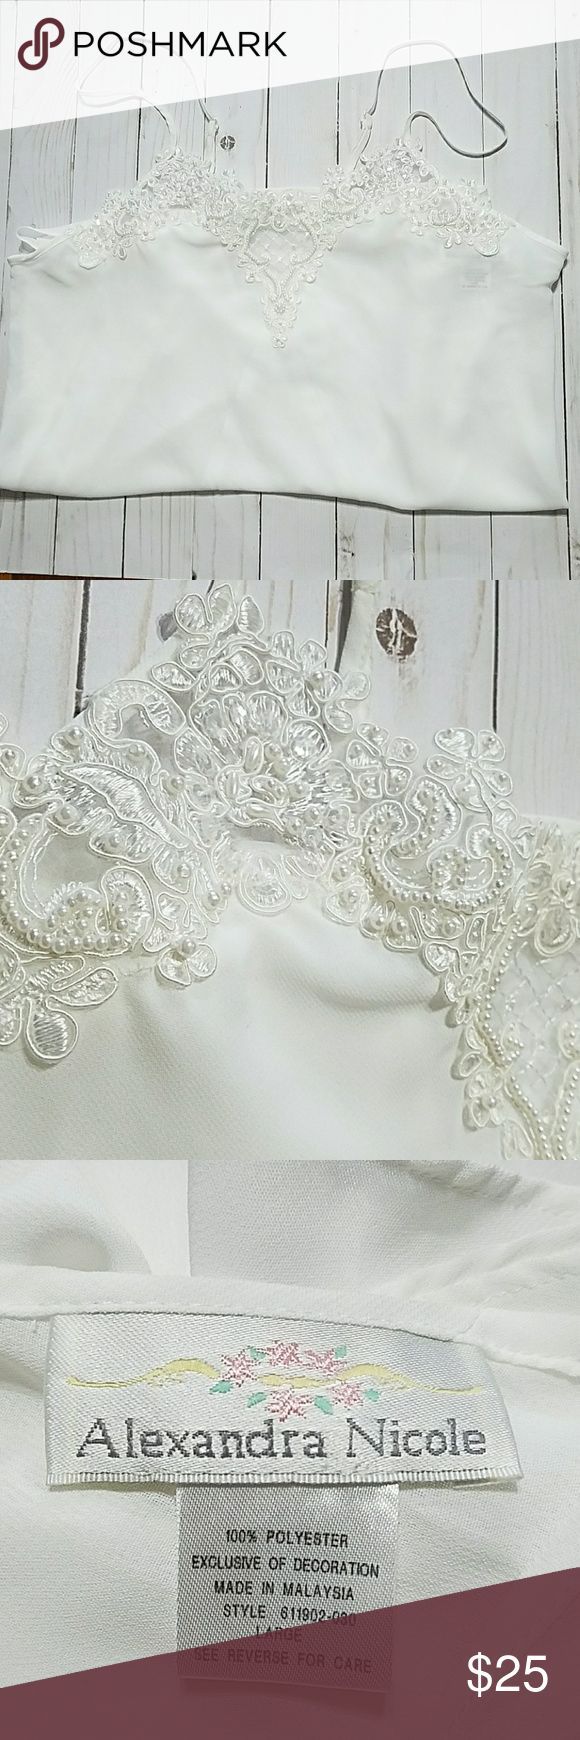 Alexandra Nicole Ivory Bridal Chemise L NWOT Alexandra Nicole New no tags  Women's chemise  Ivory  Adjustable straps Front yoke embellished lace w/crystal sequins & pearls Decorated back bow  Size large Pit to pit 22 Length 32 100% polyester  Made in Malaysia Alexandra Nicole Intimates & Sleepwear Chemises & Slips